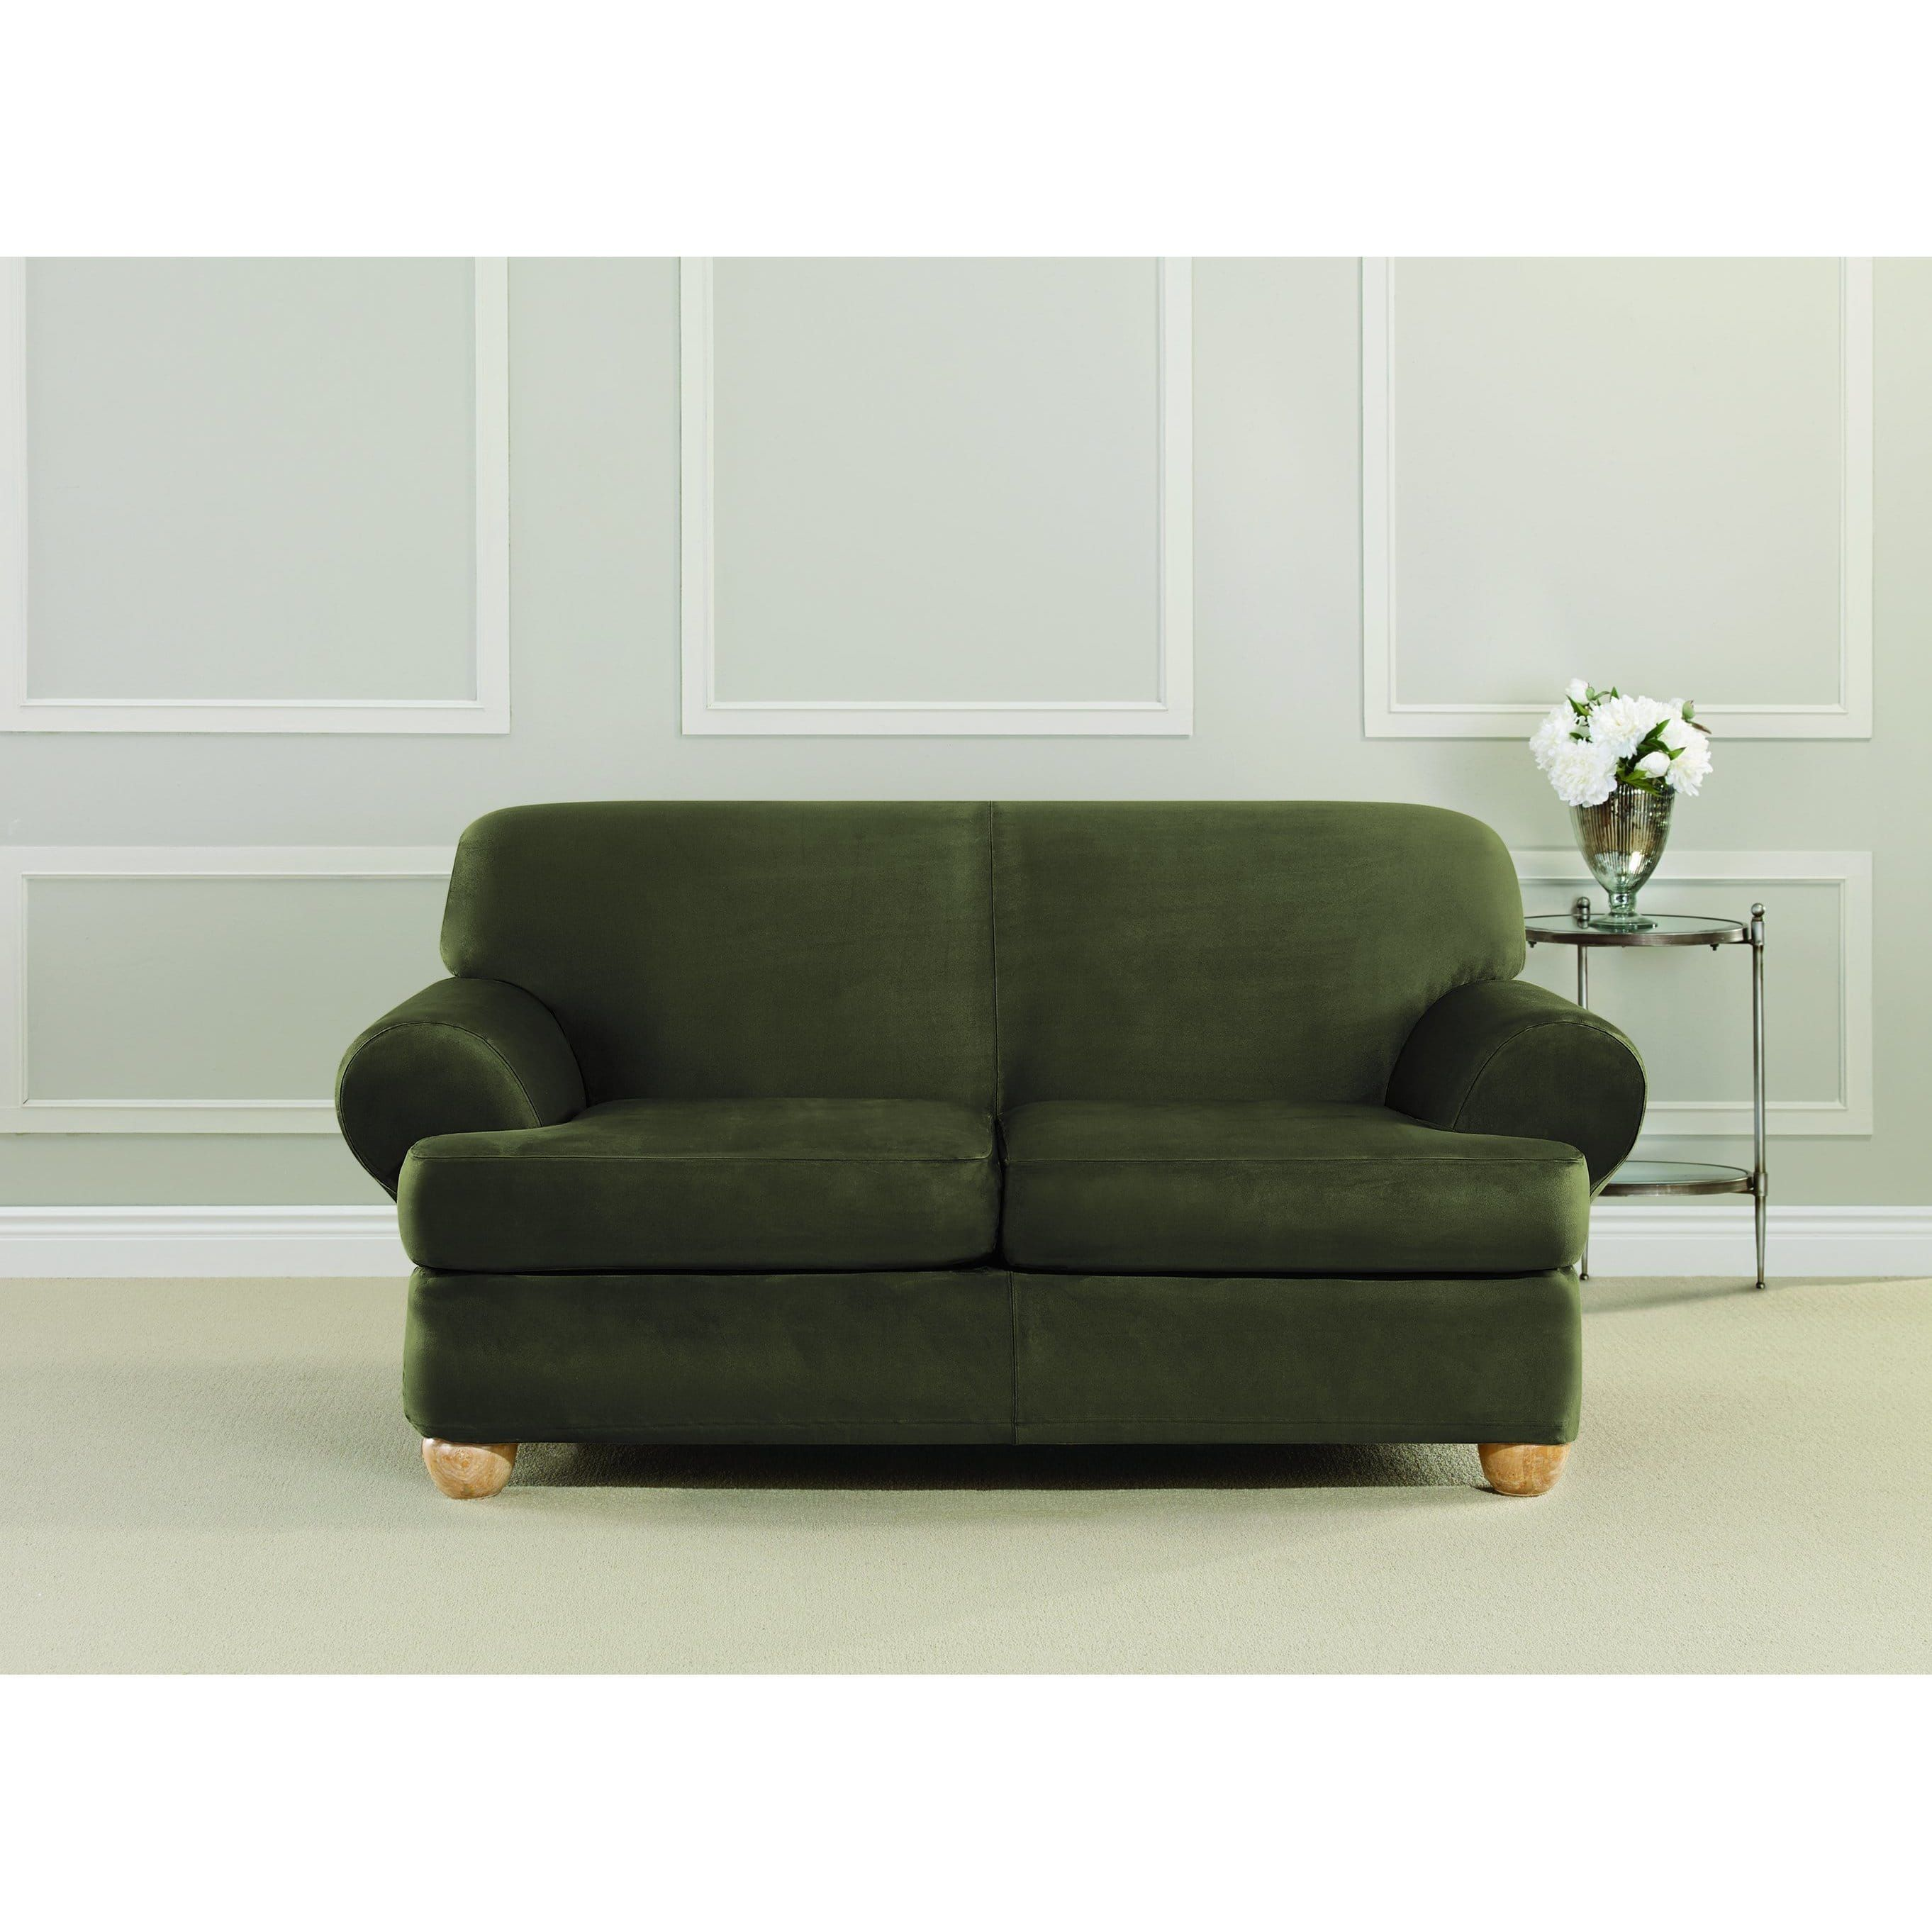 stretch regarding slipcovers photos covers ideas walmart decor piece slipcover sofa